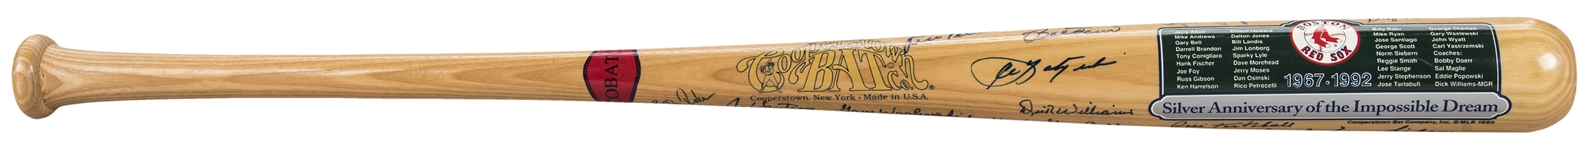 1967 Boston Red Sox Team Signed Cooperstown Silver Anniversary of the Impossible Dream Commemorative Bat with 26 Signatures (Doerr Family LOA & JSA)